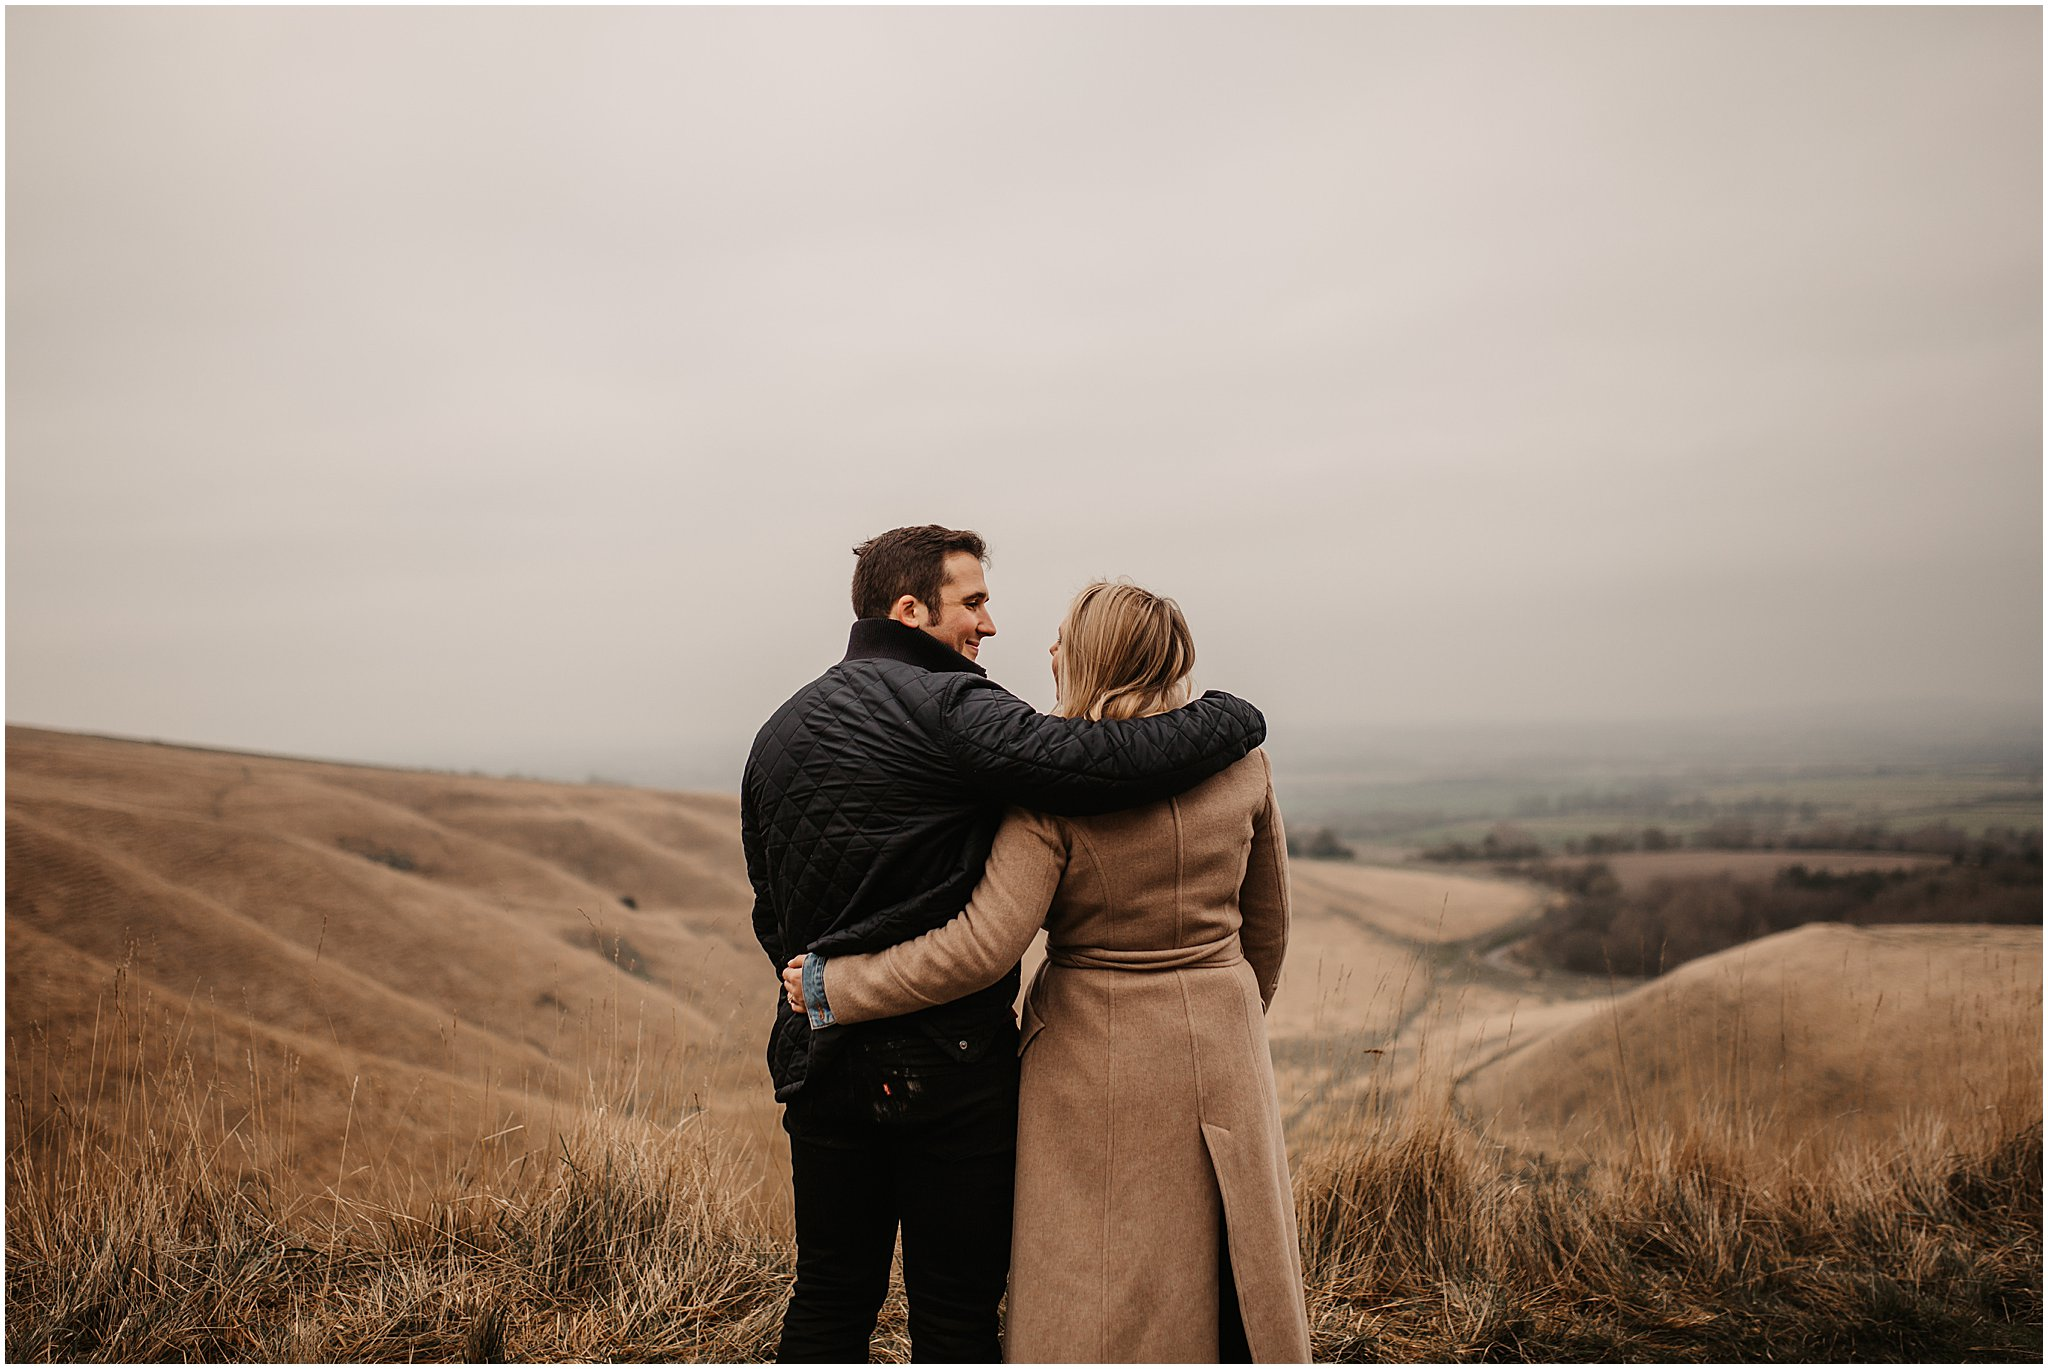 Mike & Charley_s Winter Engagement Shoot Wiltshire-134.jpg